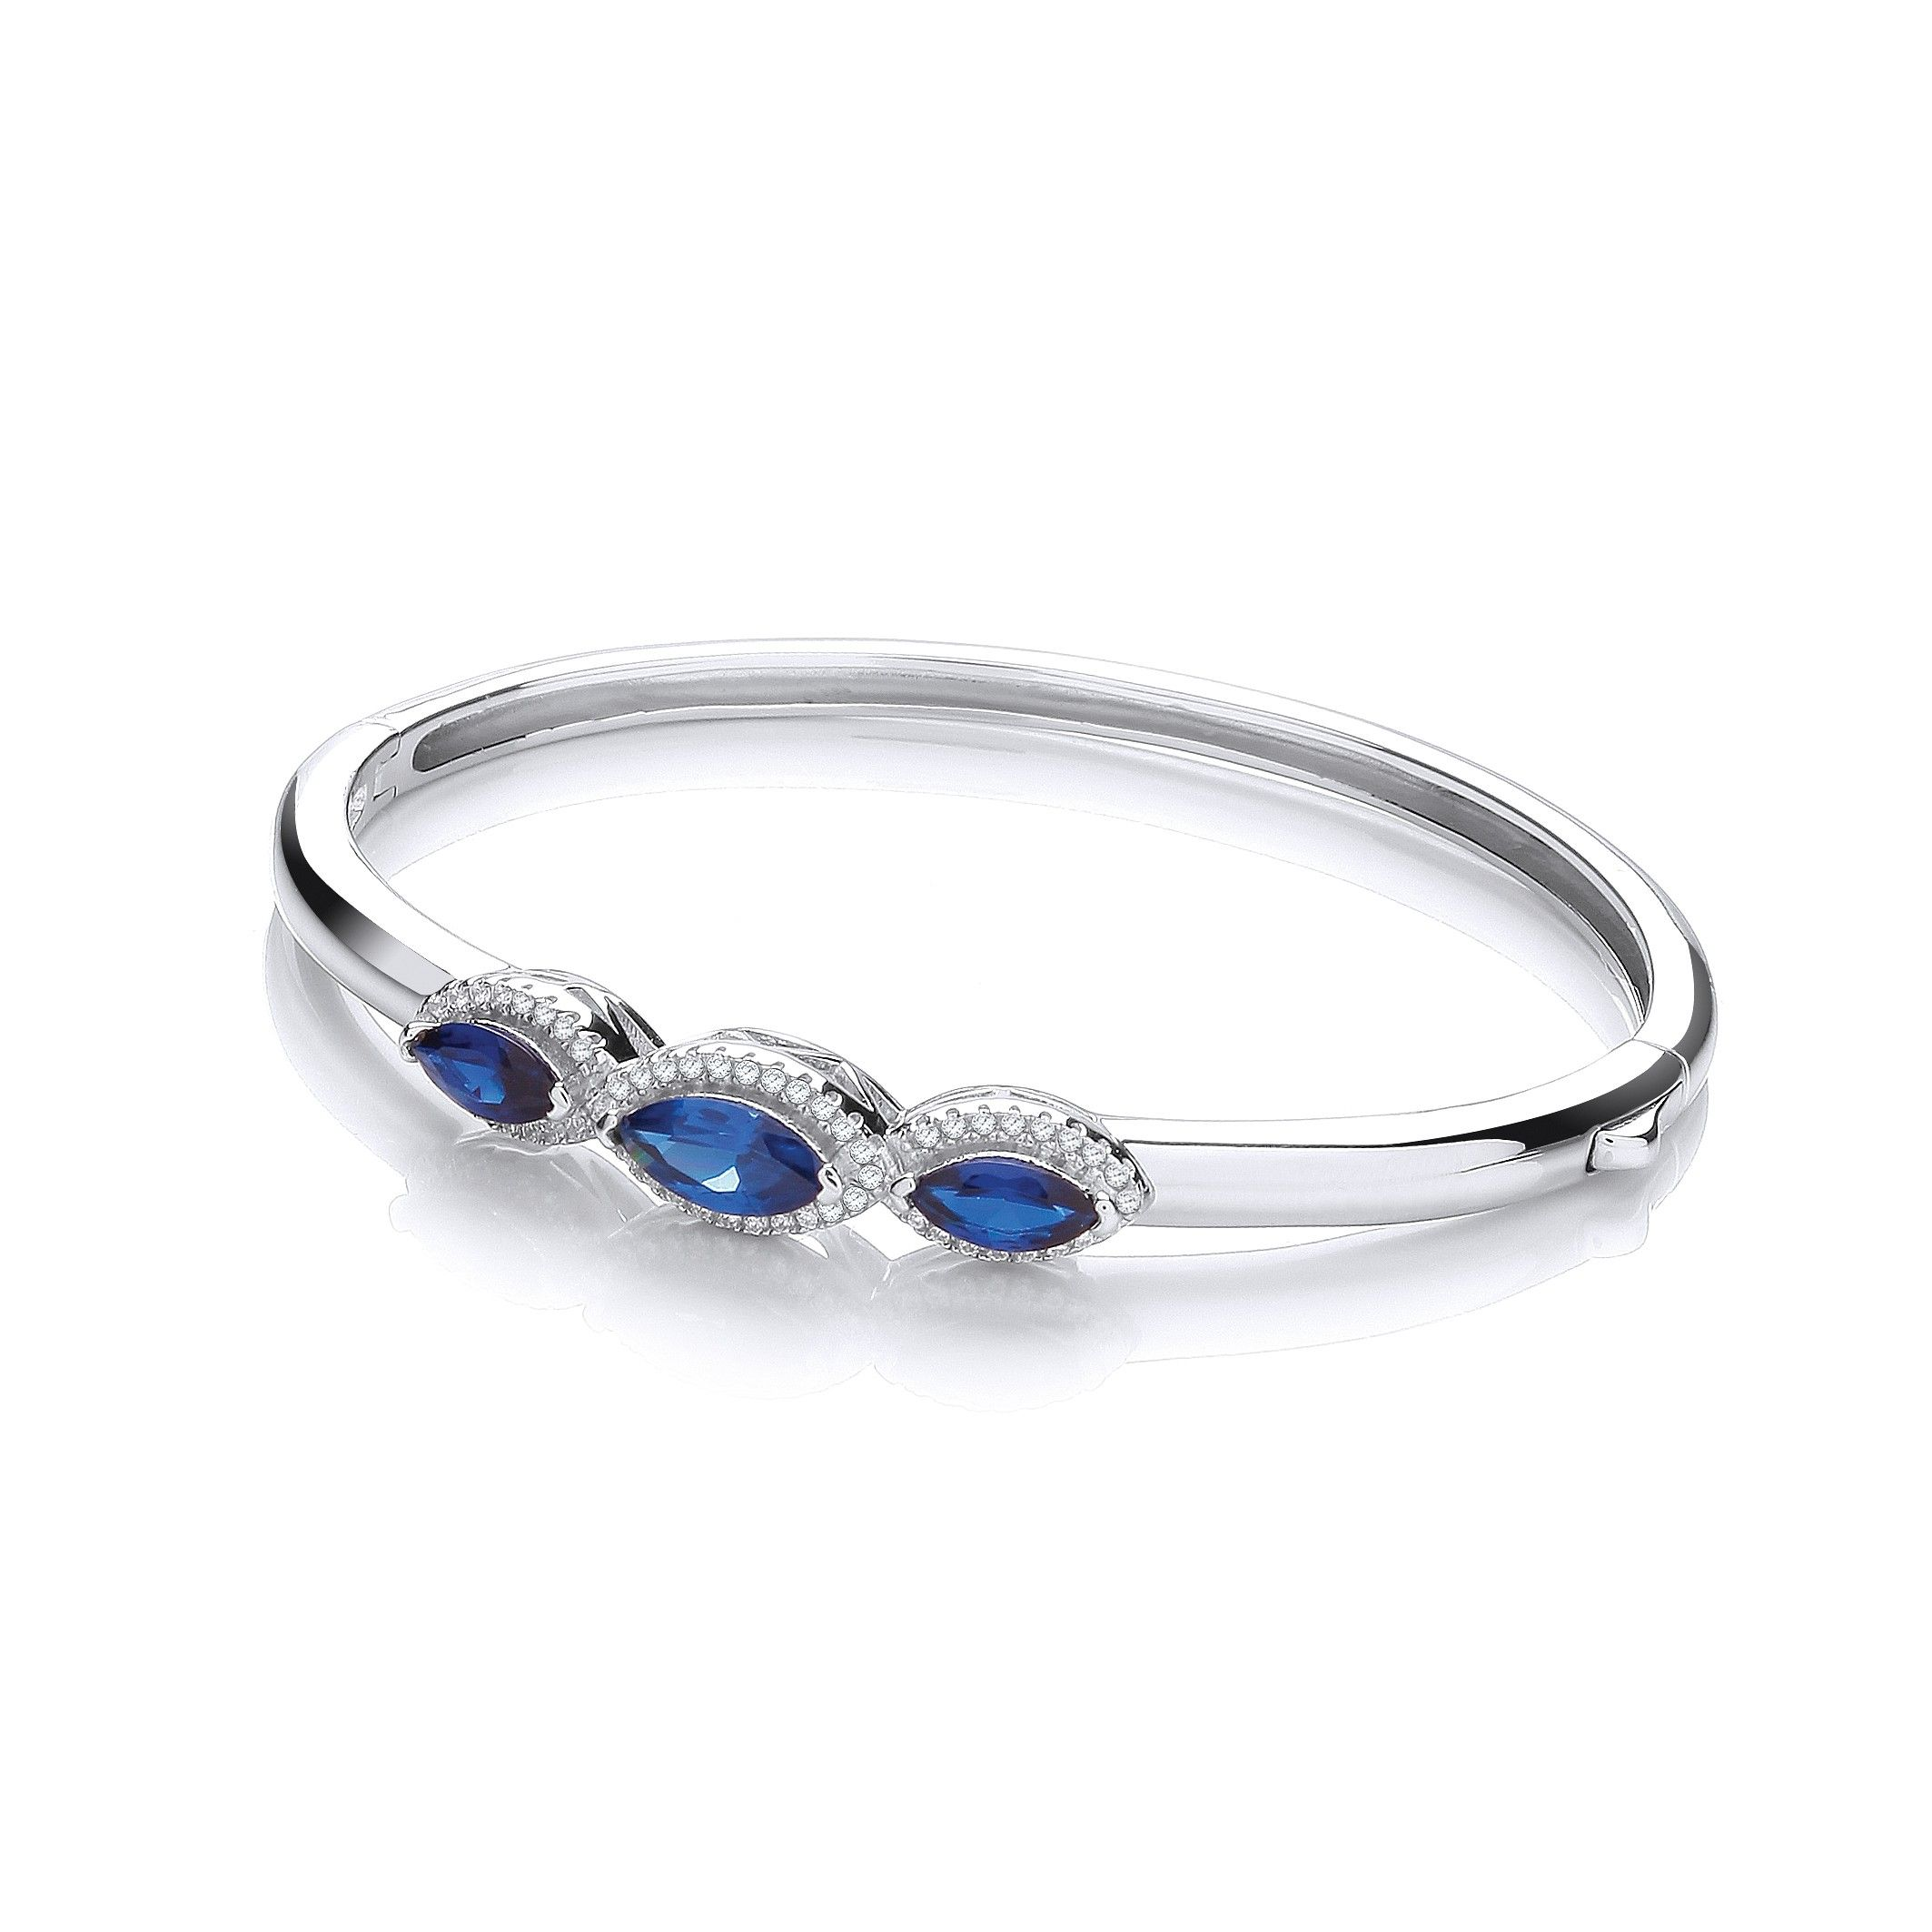 Sterling Silver Bangle Set With Blue Cubic Zirconia